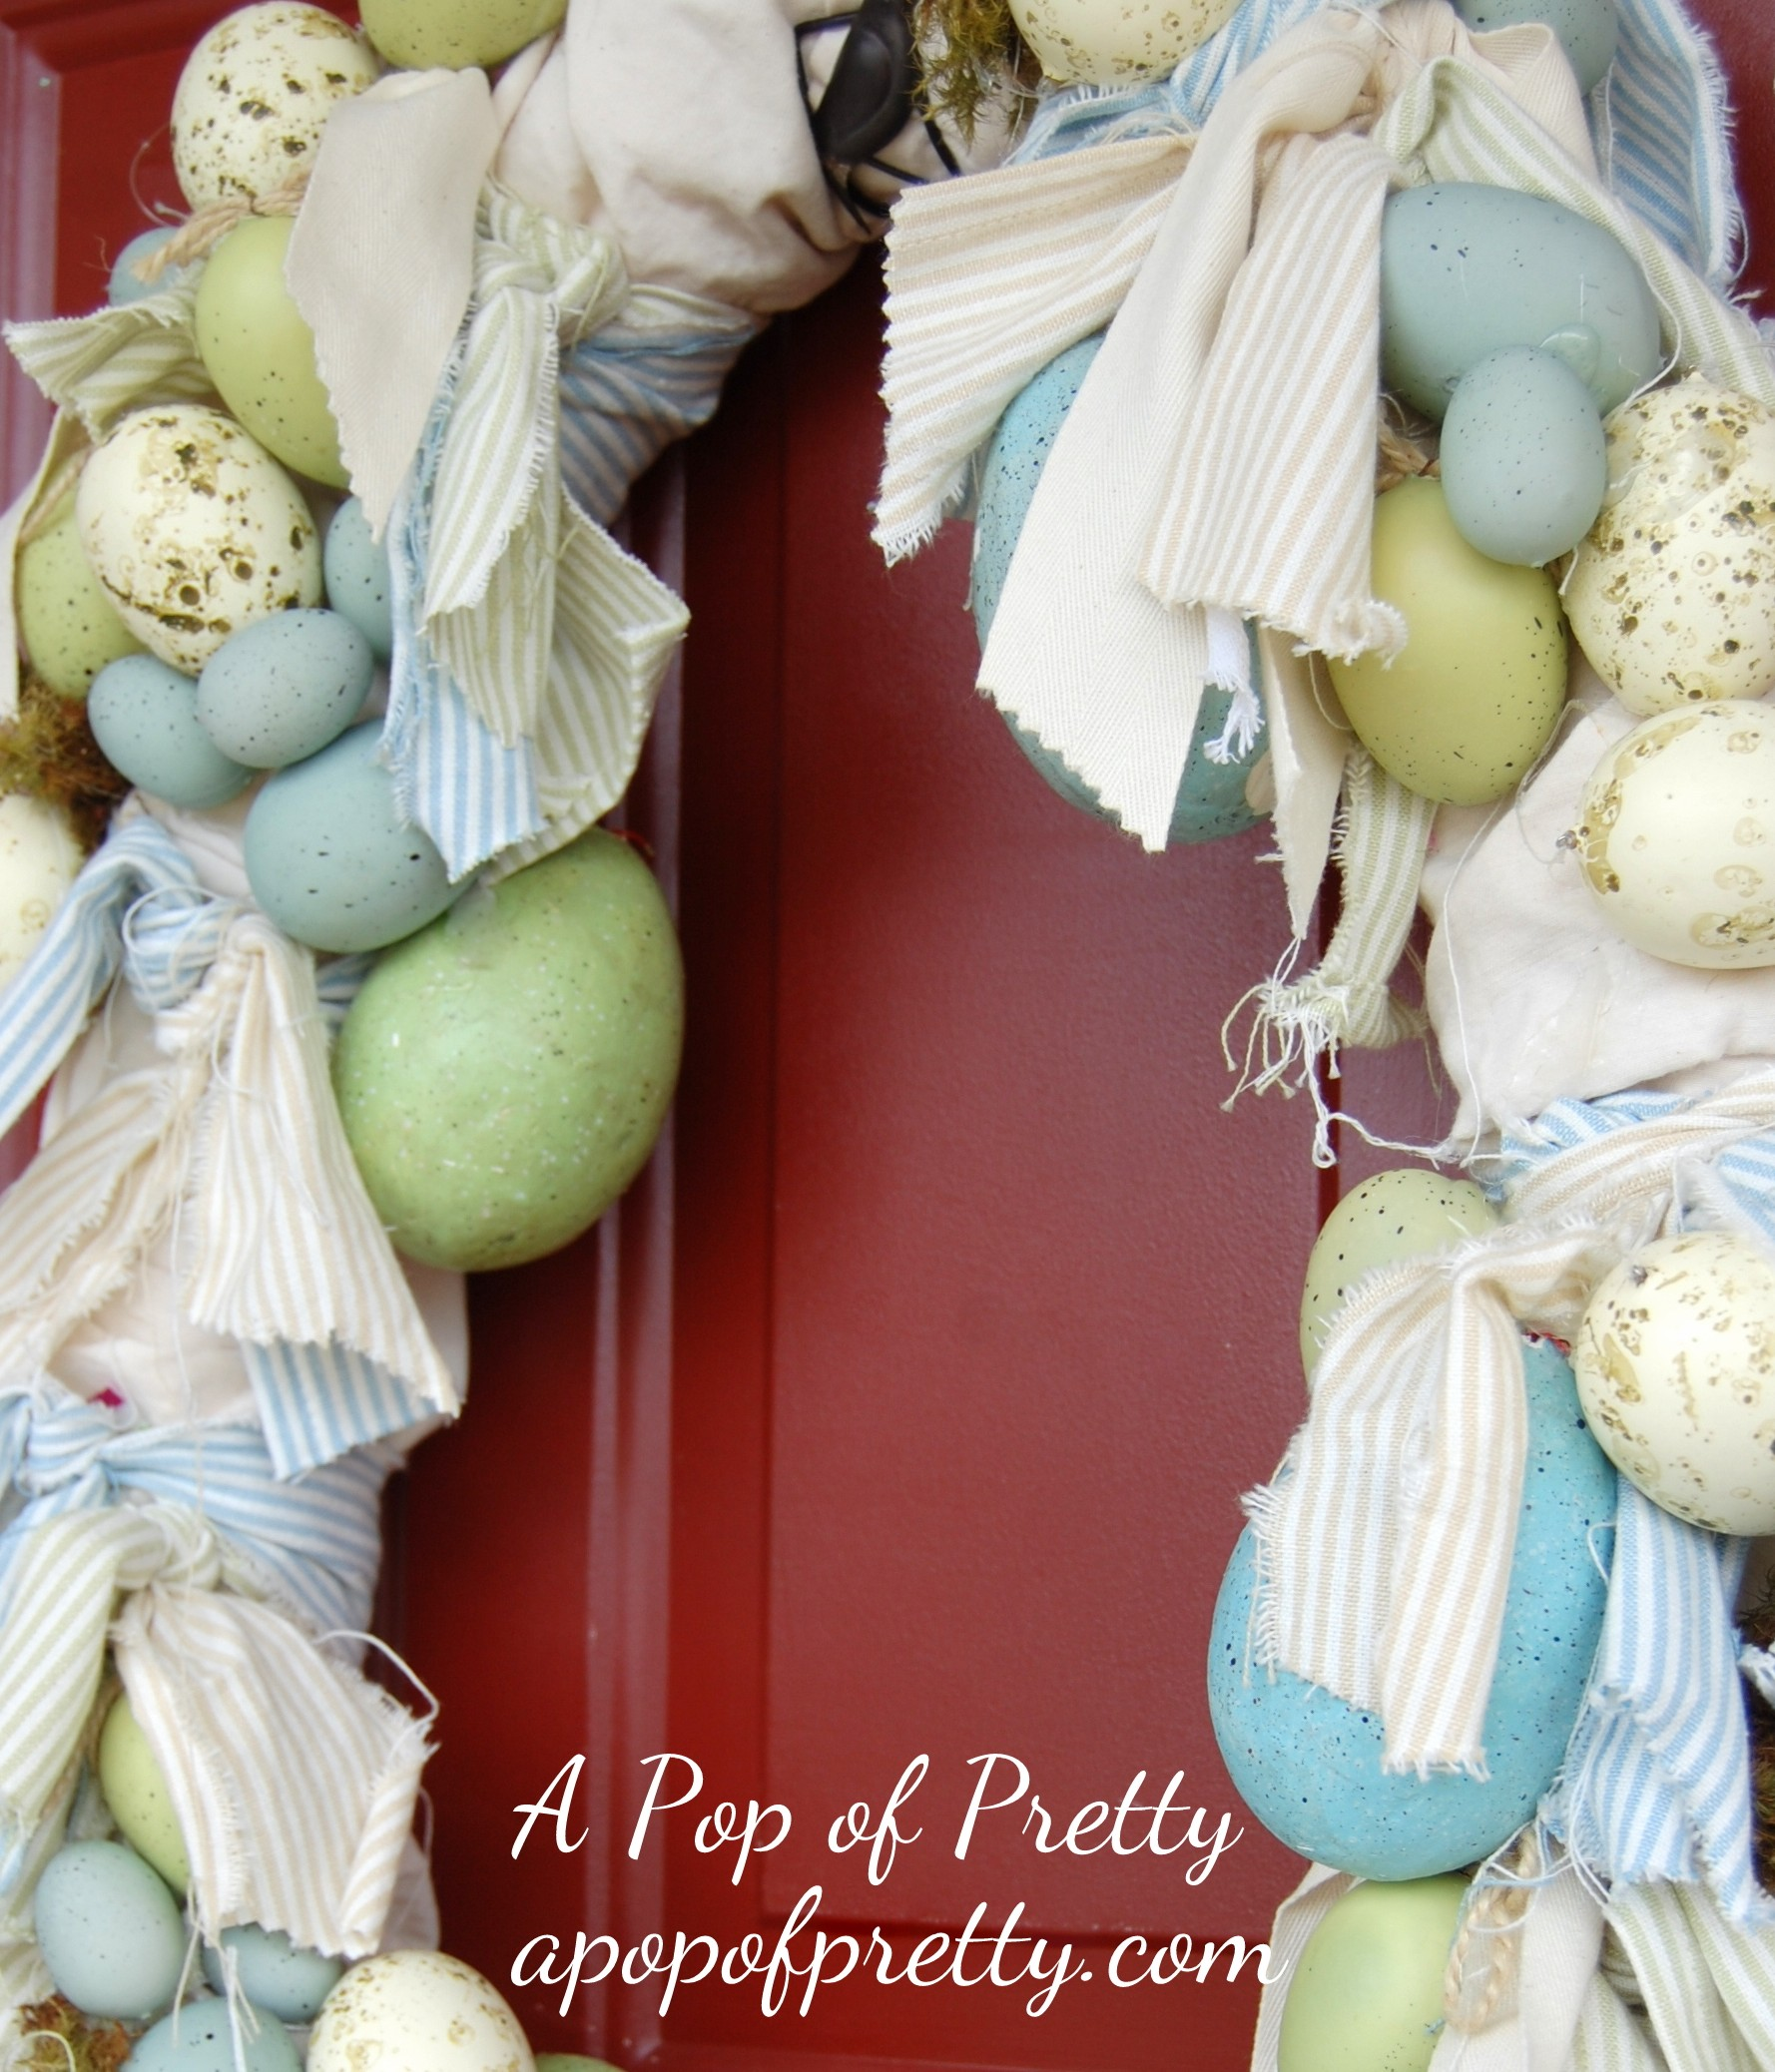 Easter Decorating Ideas: How to make a wreath for Easter, Shabby Chic-Style!